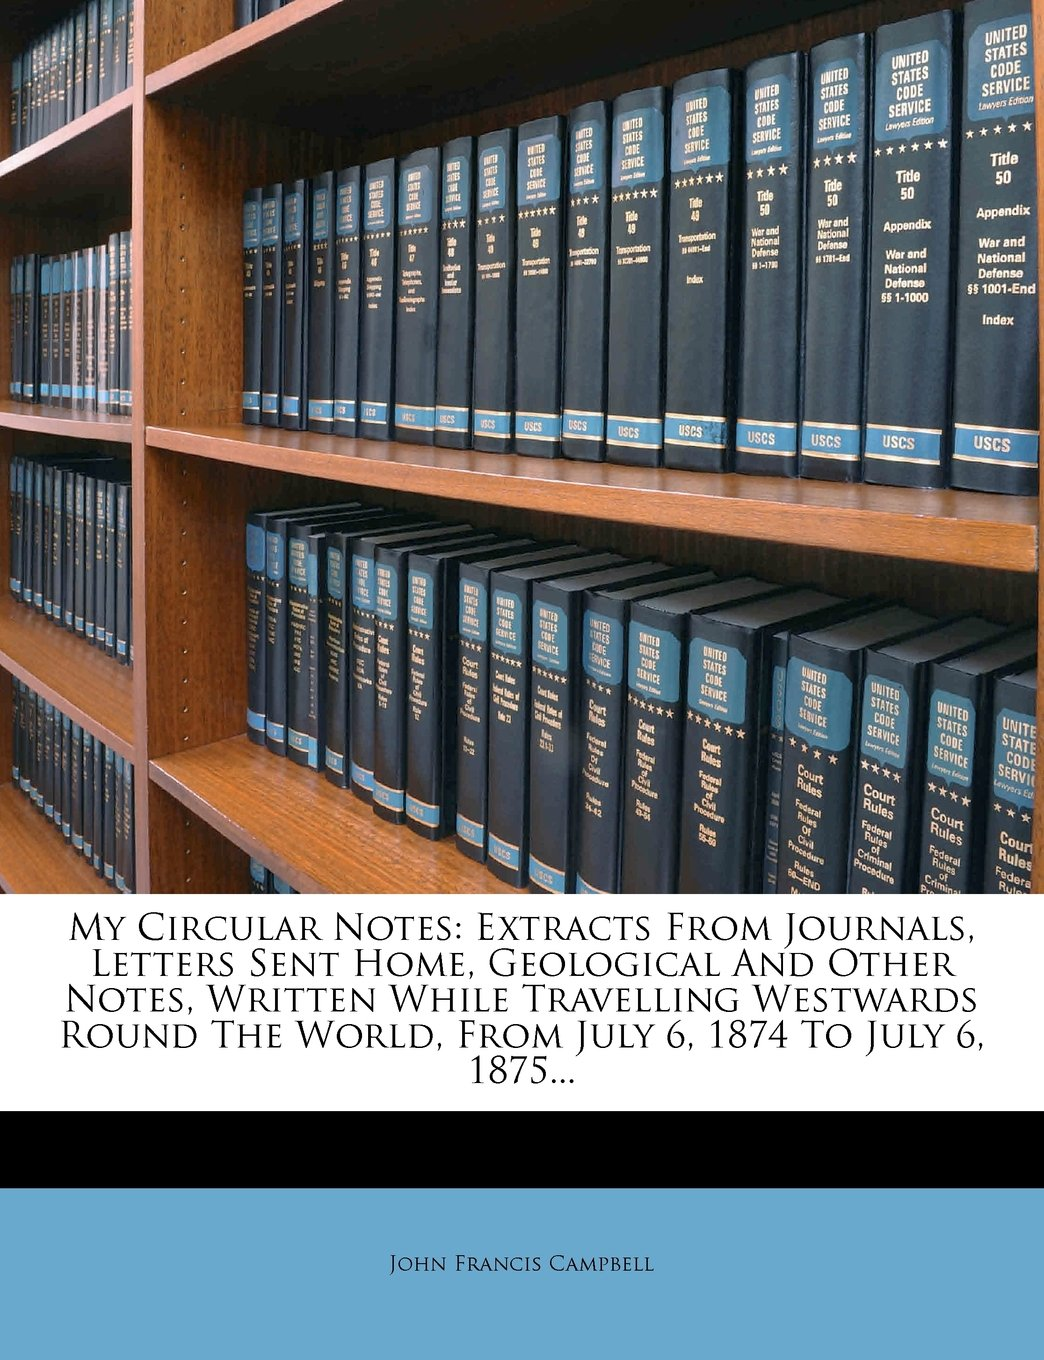 Download My Circular Notes: Extracts From Journals, Letters Sent Home, Geological And Other Notes, Written While Travelling Westwards Round The World, From July 6, 1874 To July 6, 1875... pdf epub